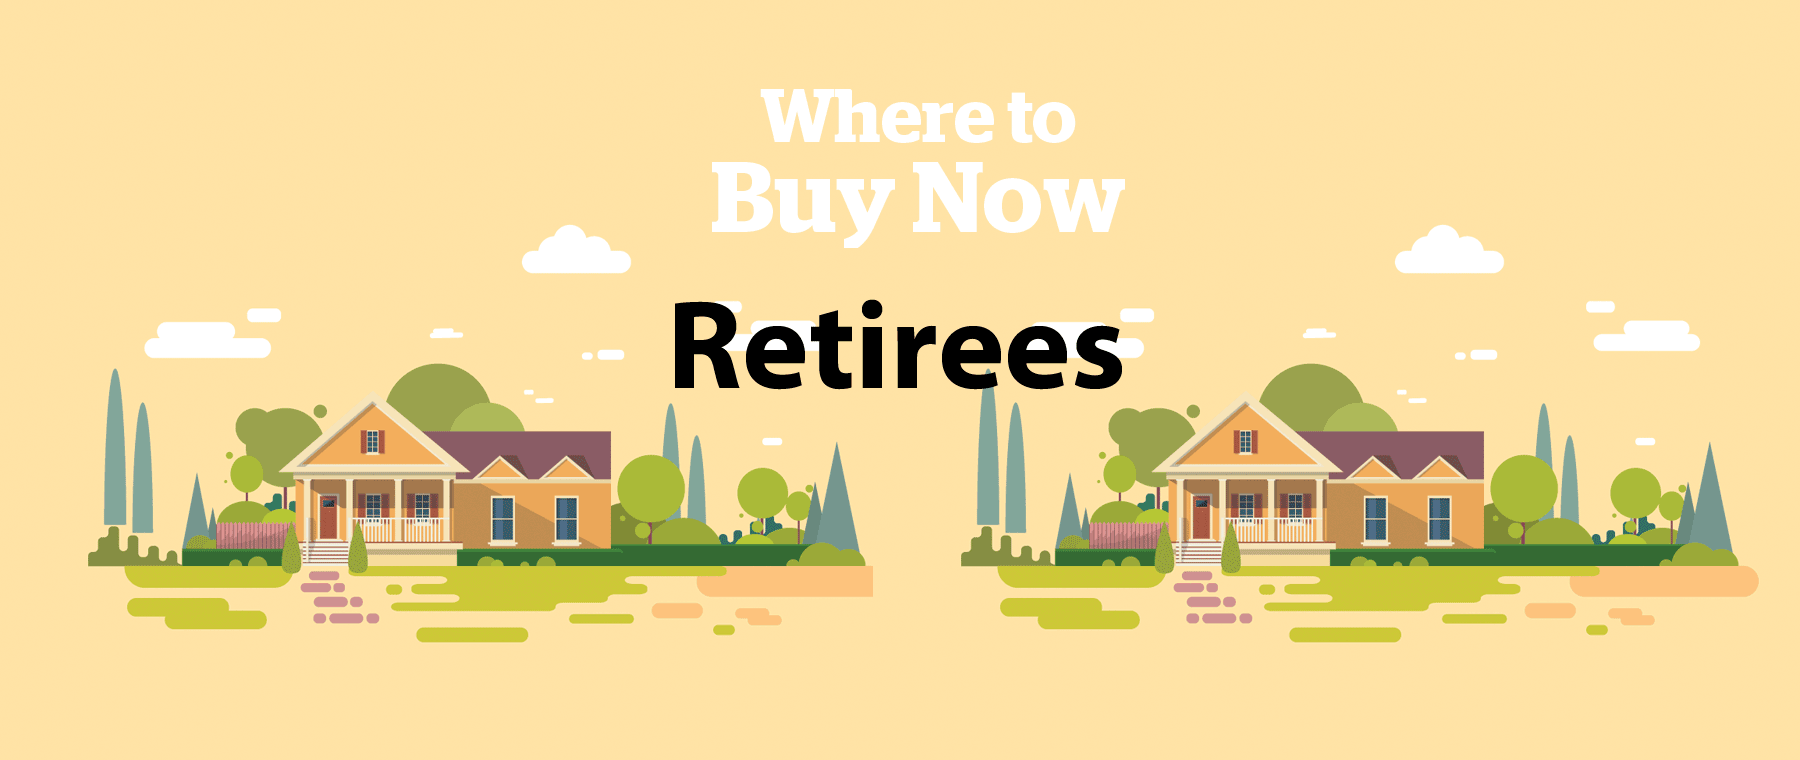 Where to buy now: 5 best neighbourhoods for retirees